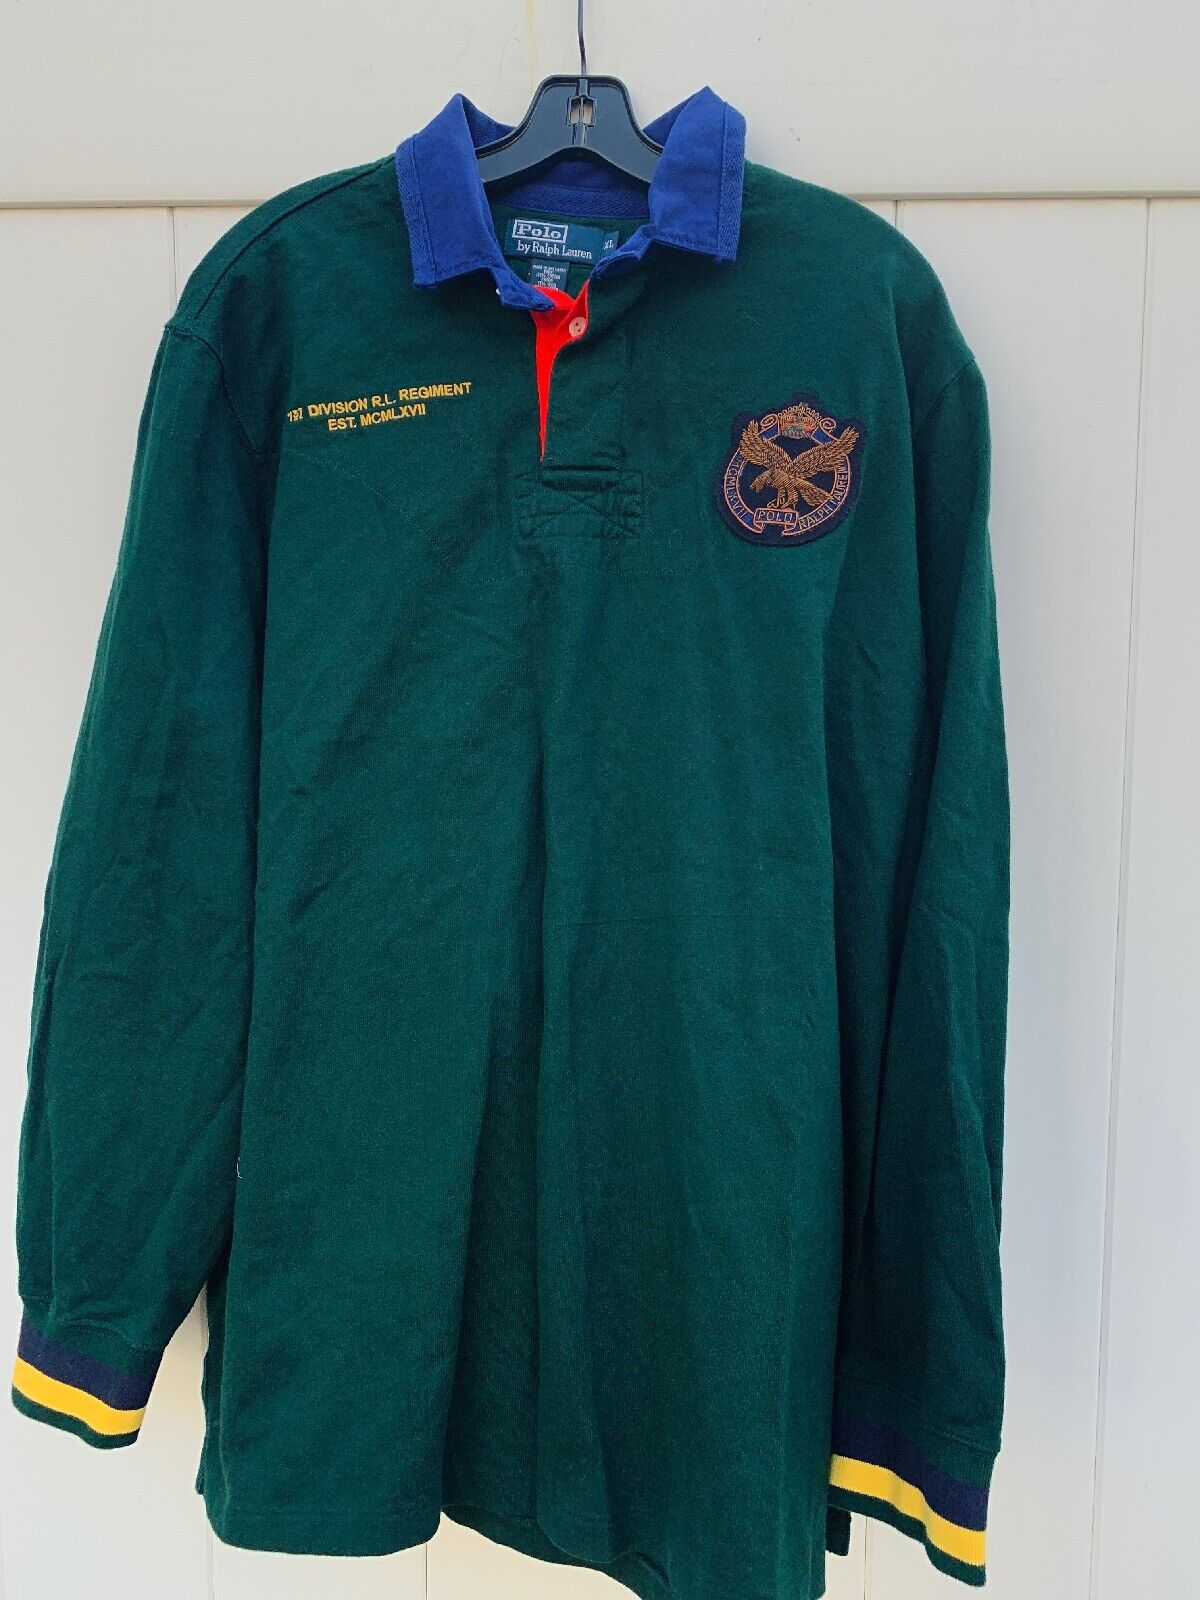 NWT Polo Ralph Lauren  1st Division RL Regiment Longsleeve Rugby Shirt Size XL